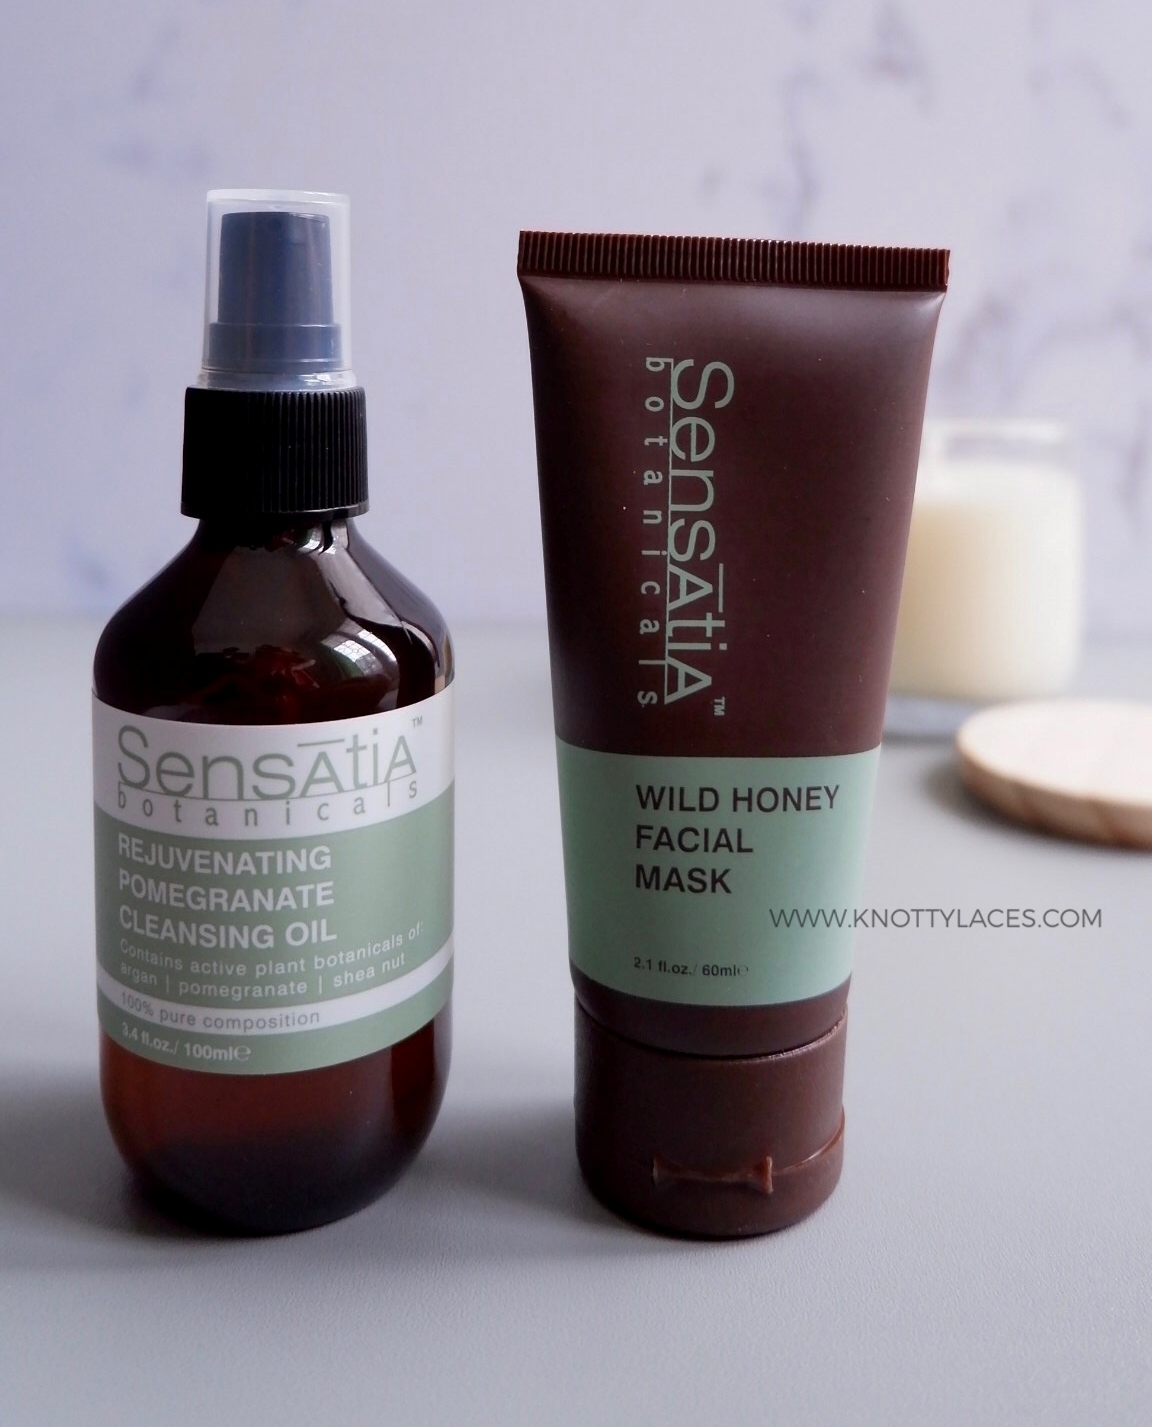 Knotty Laces Sensatia Botanicals Facial C Serum Dry To Normal 60 Ml Ill Start With Pomegranate Cleansing Oil Hmmm How I Love Pomegranates Just Wish We Have More Of Them Here Is Famous For Rejuvenating Skin